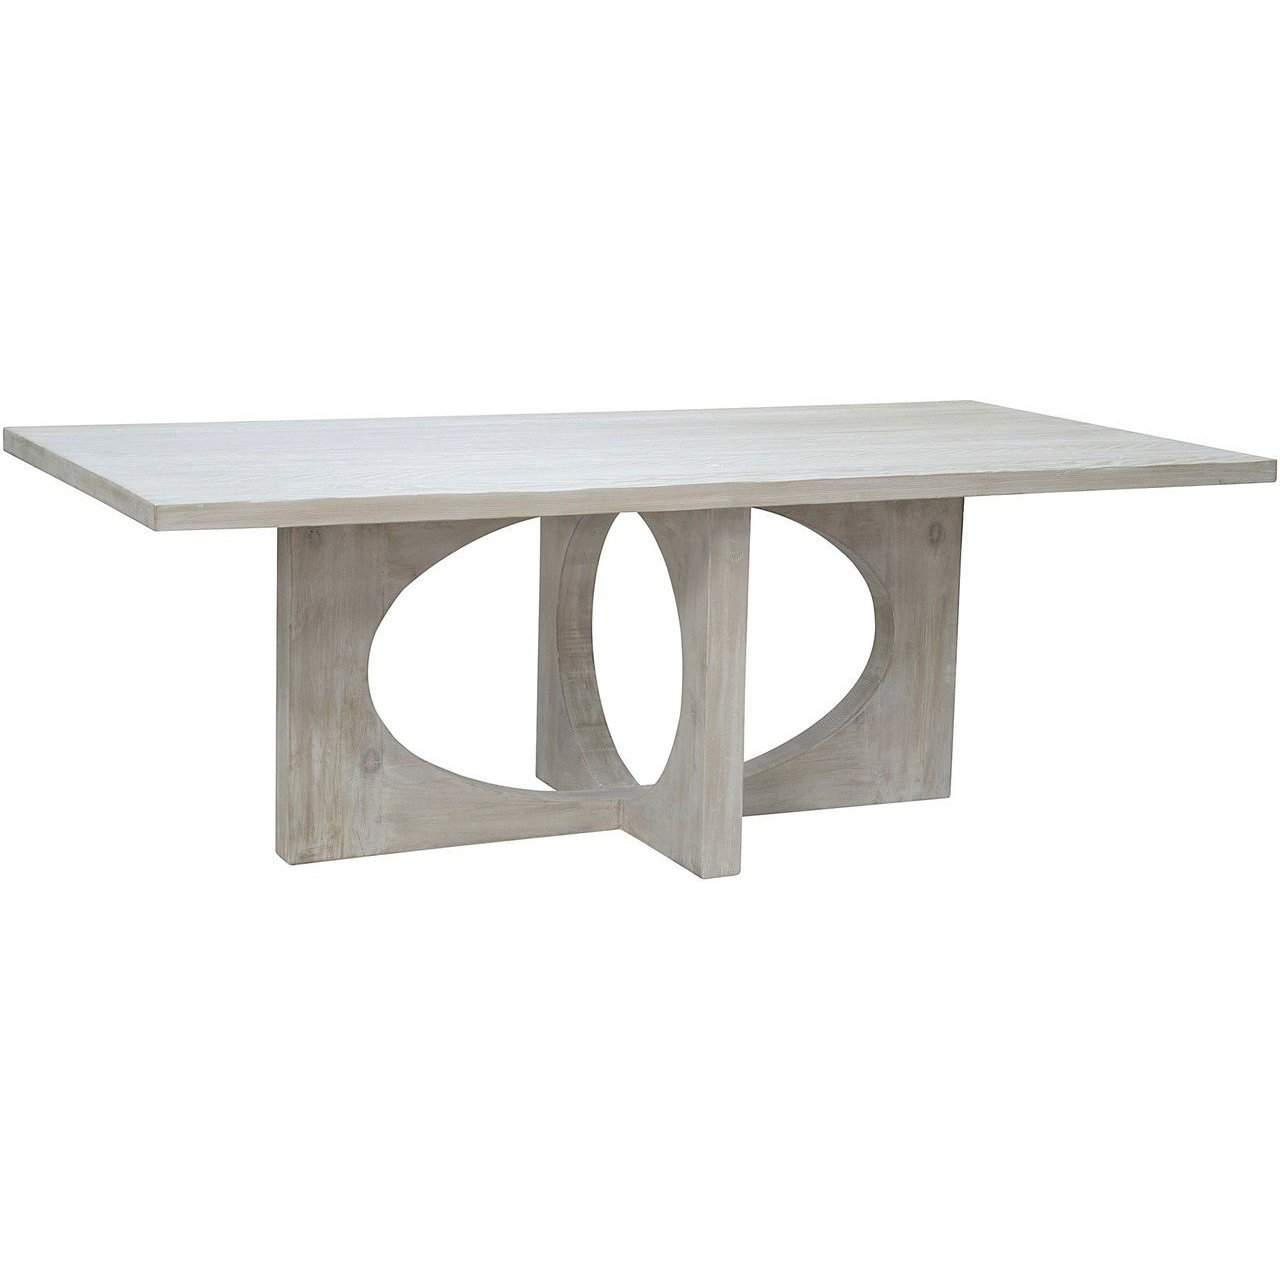 CFC Furniture Buttercup Dining Table